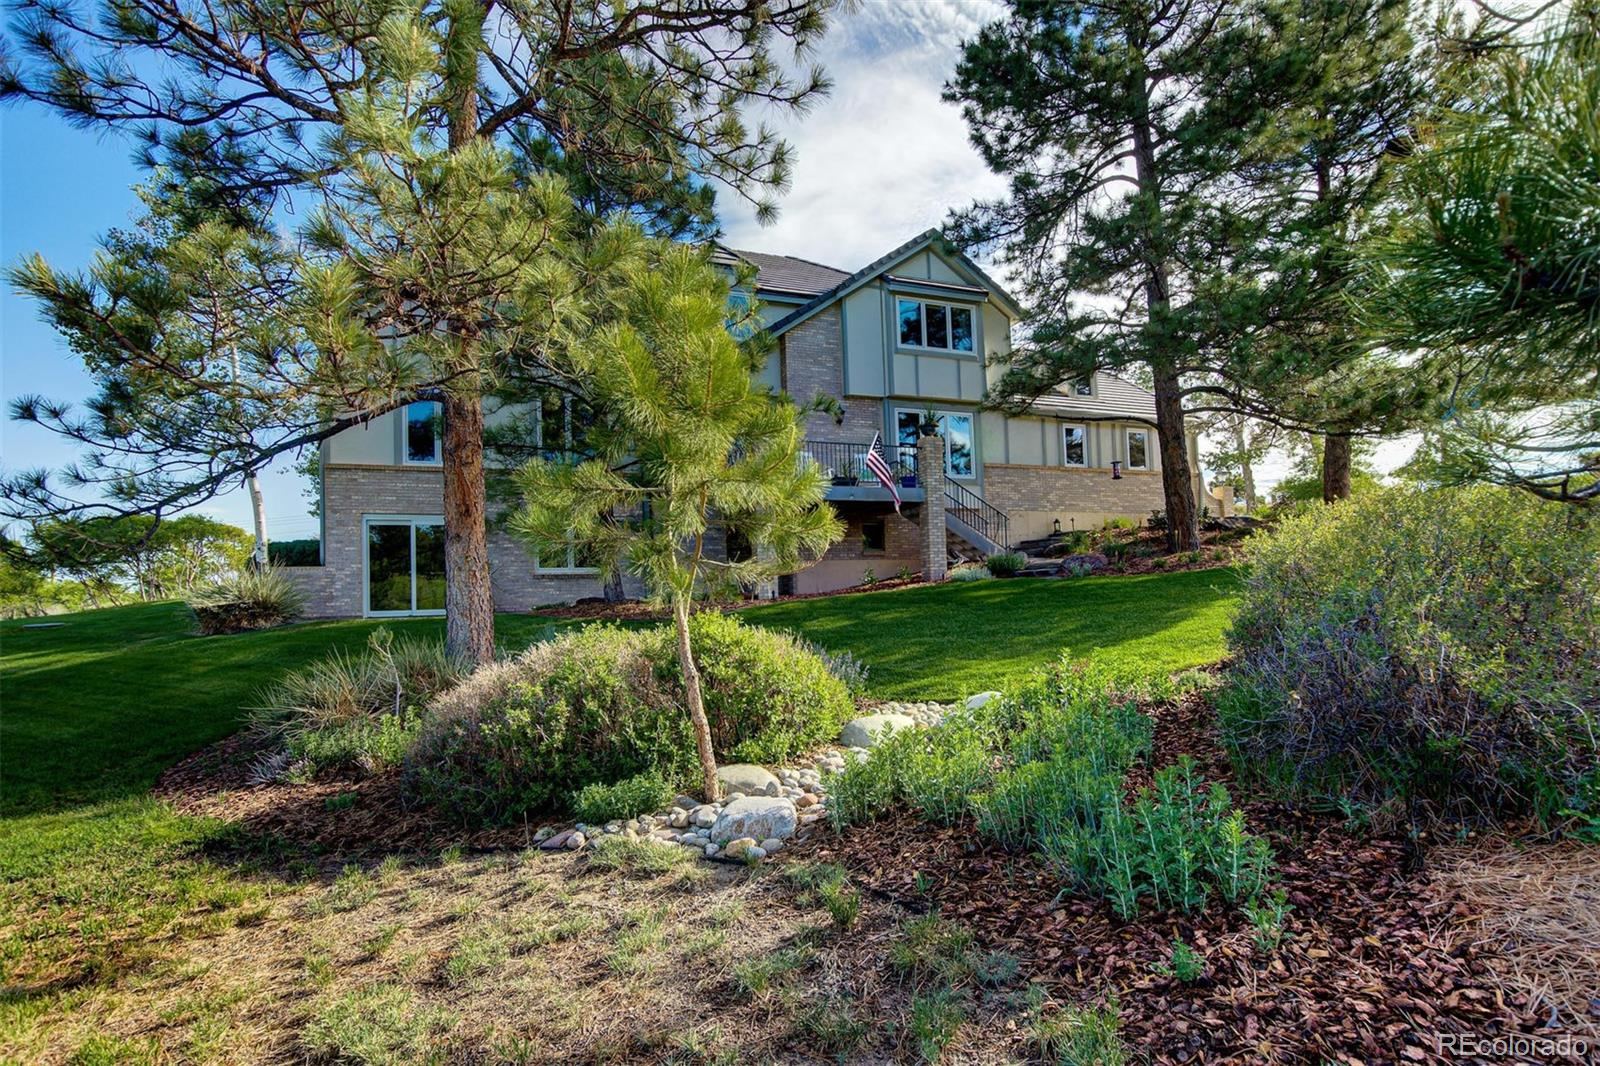 MLS# 4896104 - 6234 Ponderosa Way, Parker, CO 80134